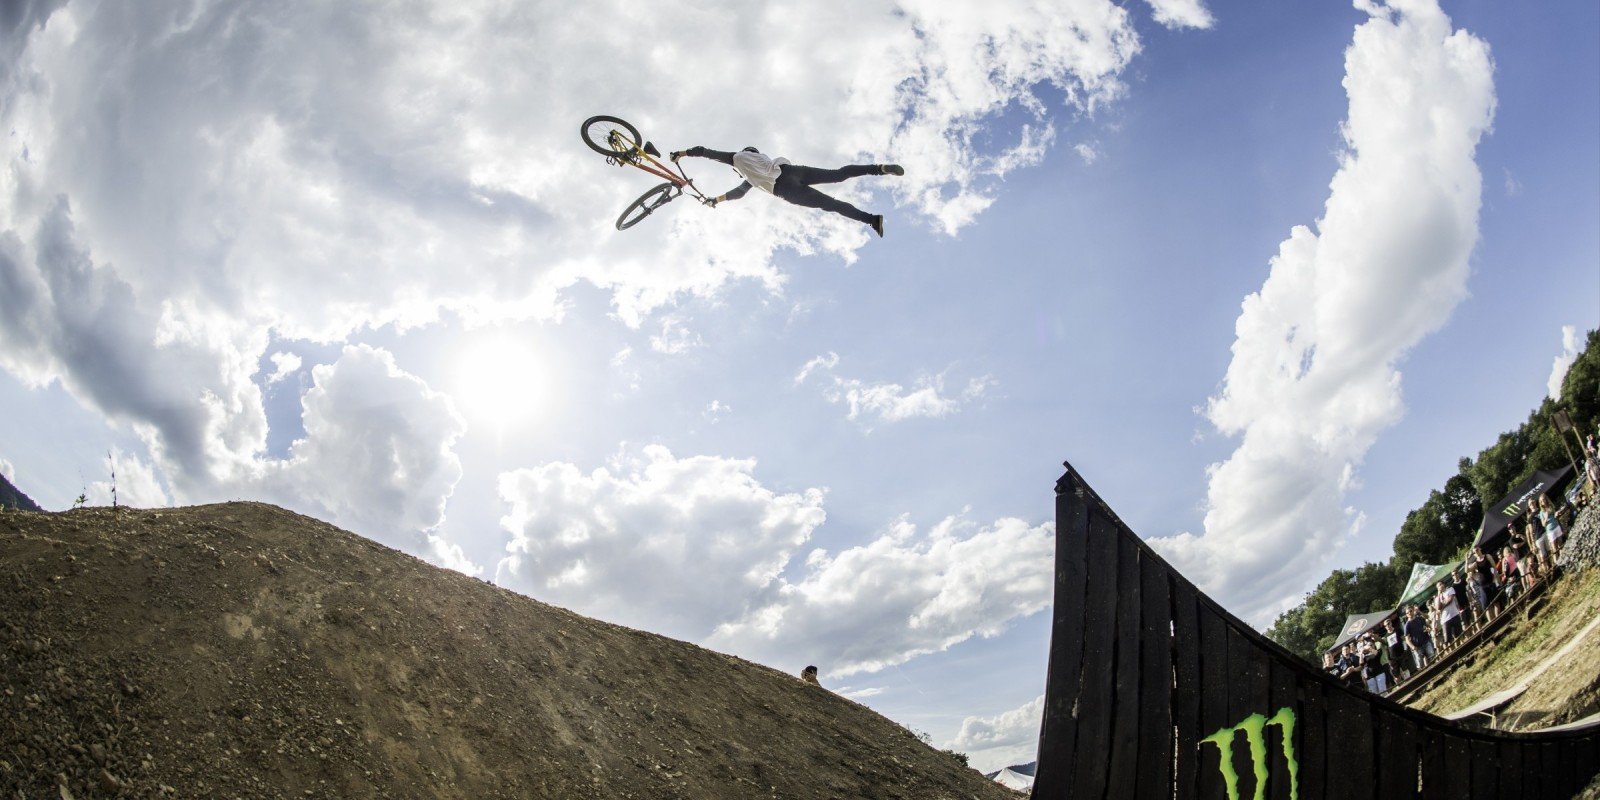 Popular western themed MTB event in Usti nad Labem. FFT SLopestyle.